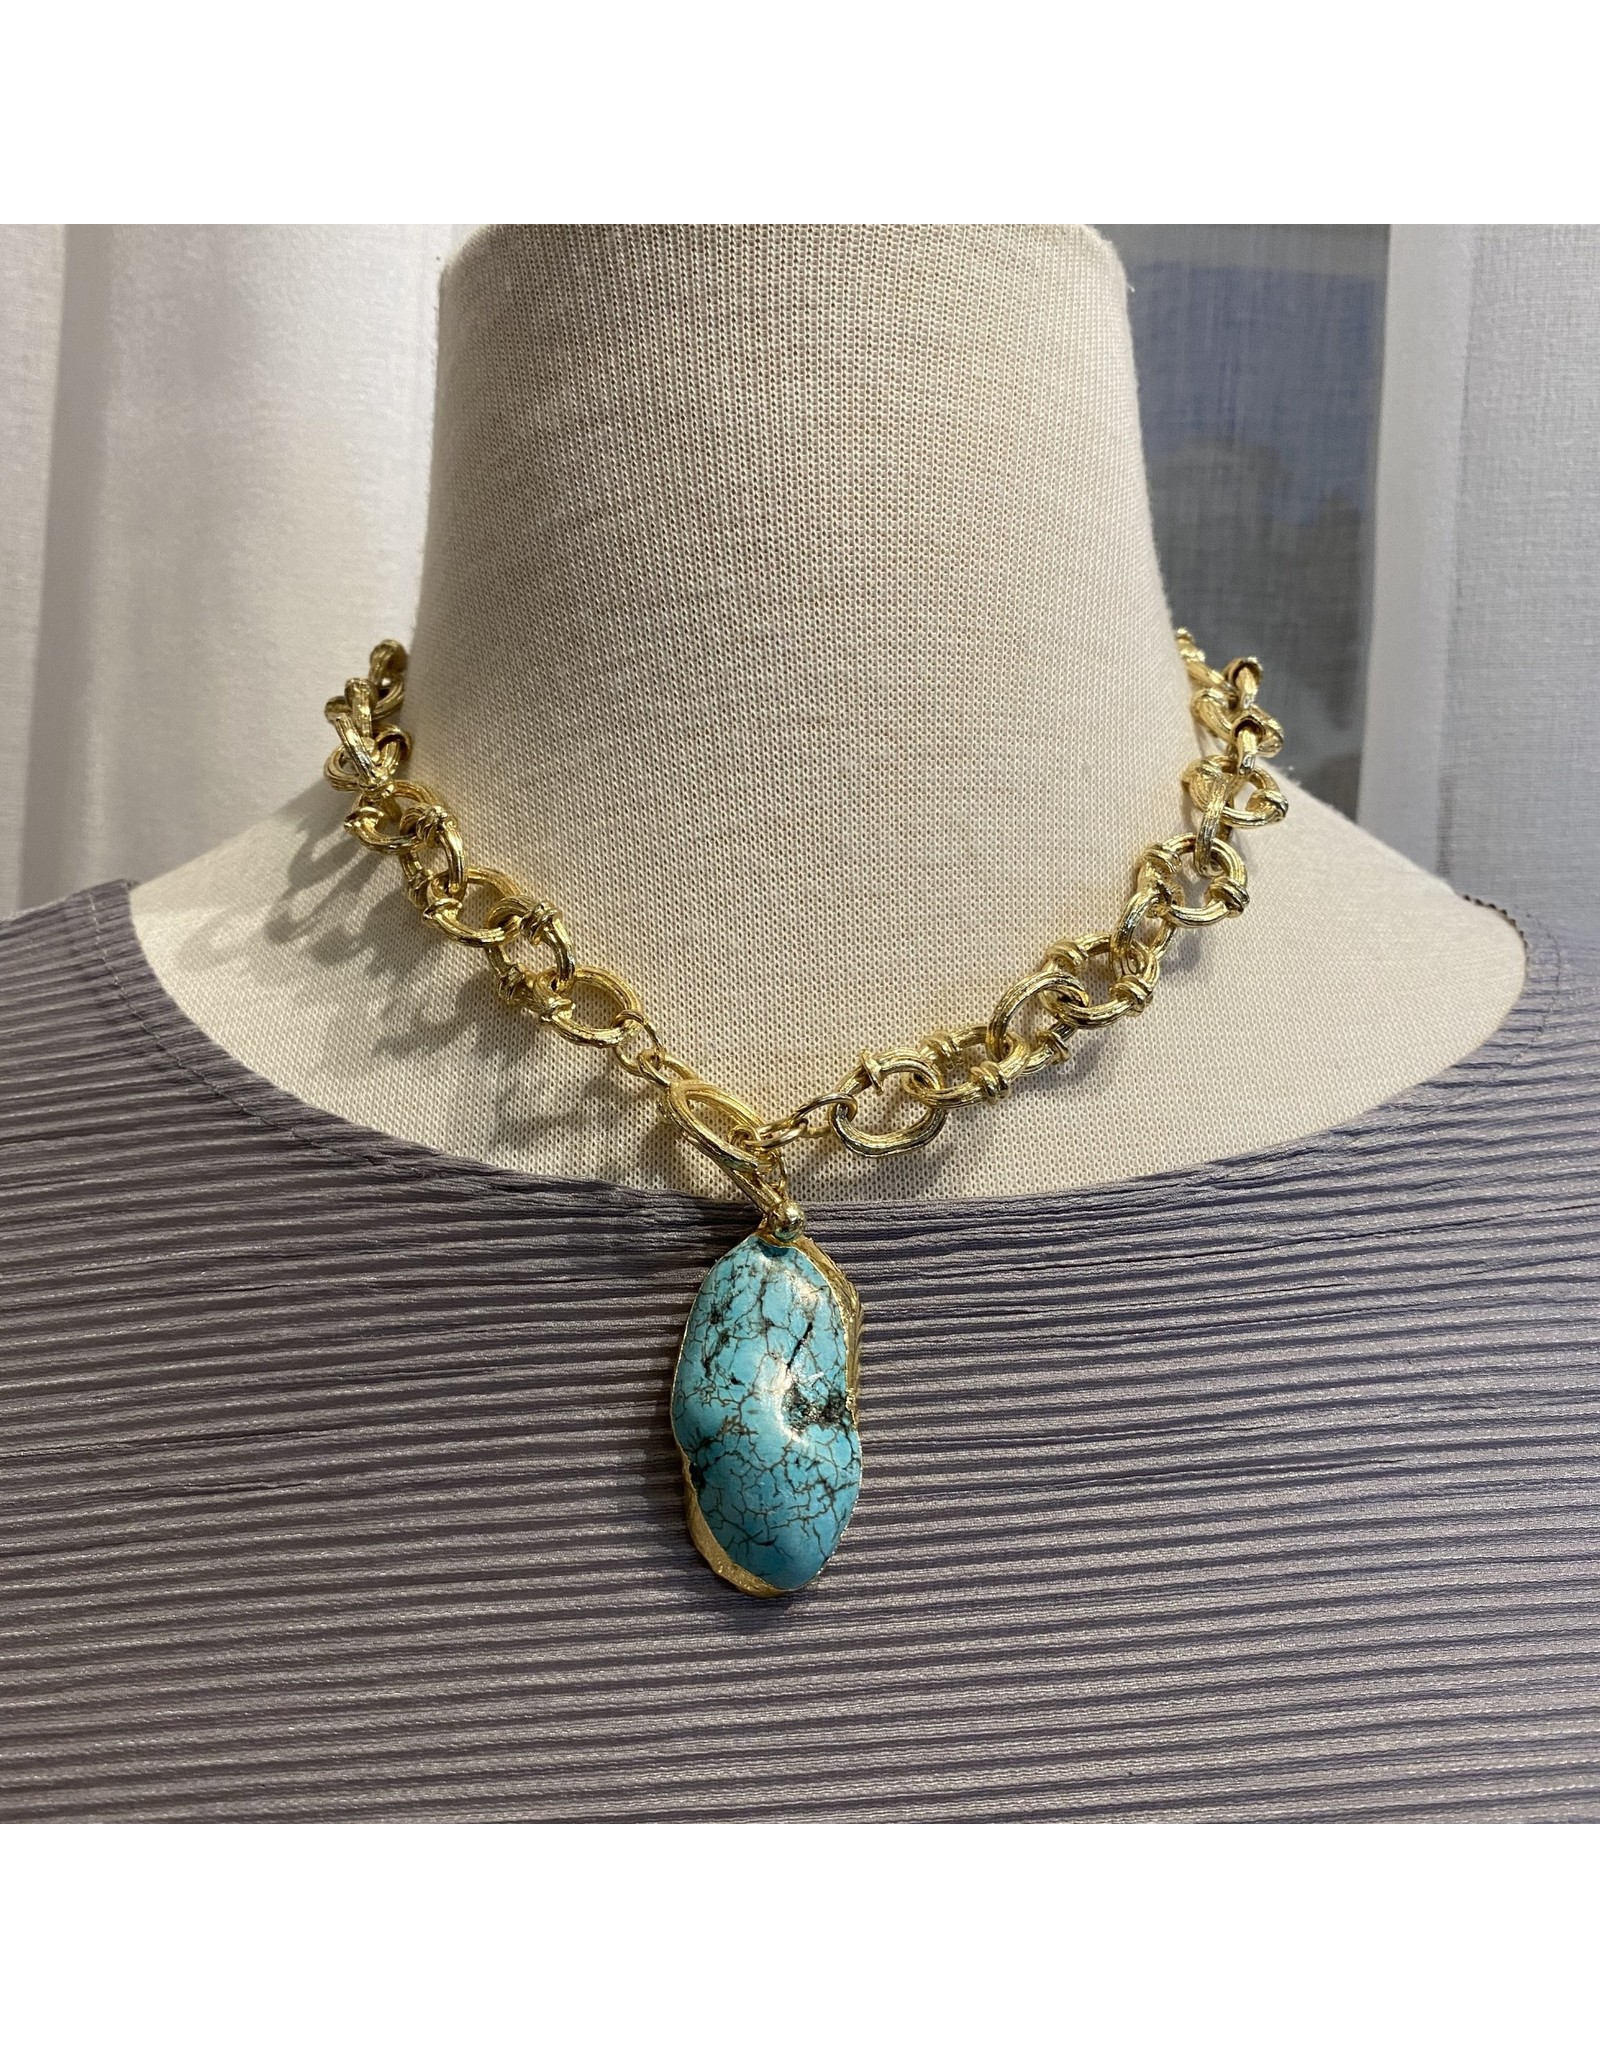 Karin Sultan Gold and Turquoise Necklace